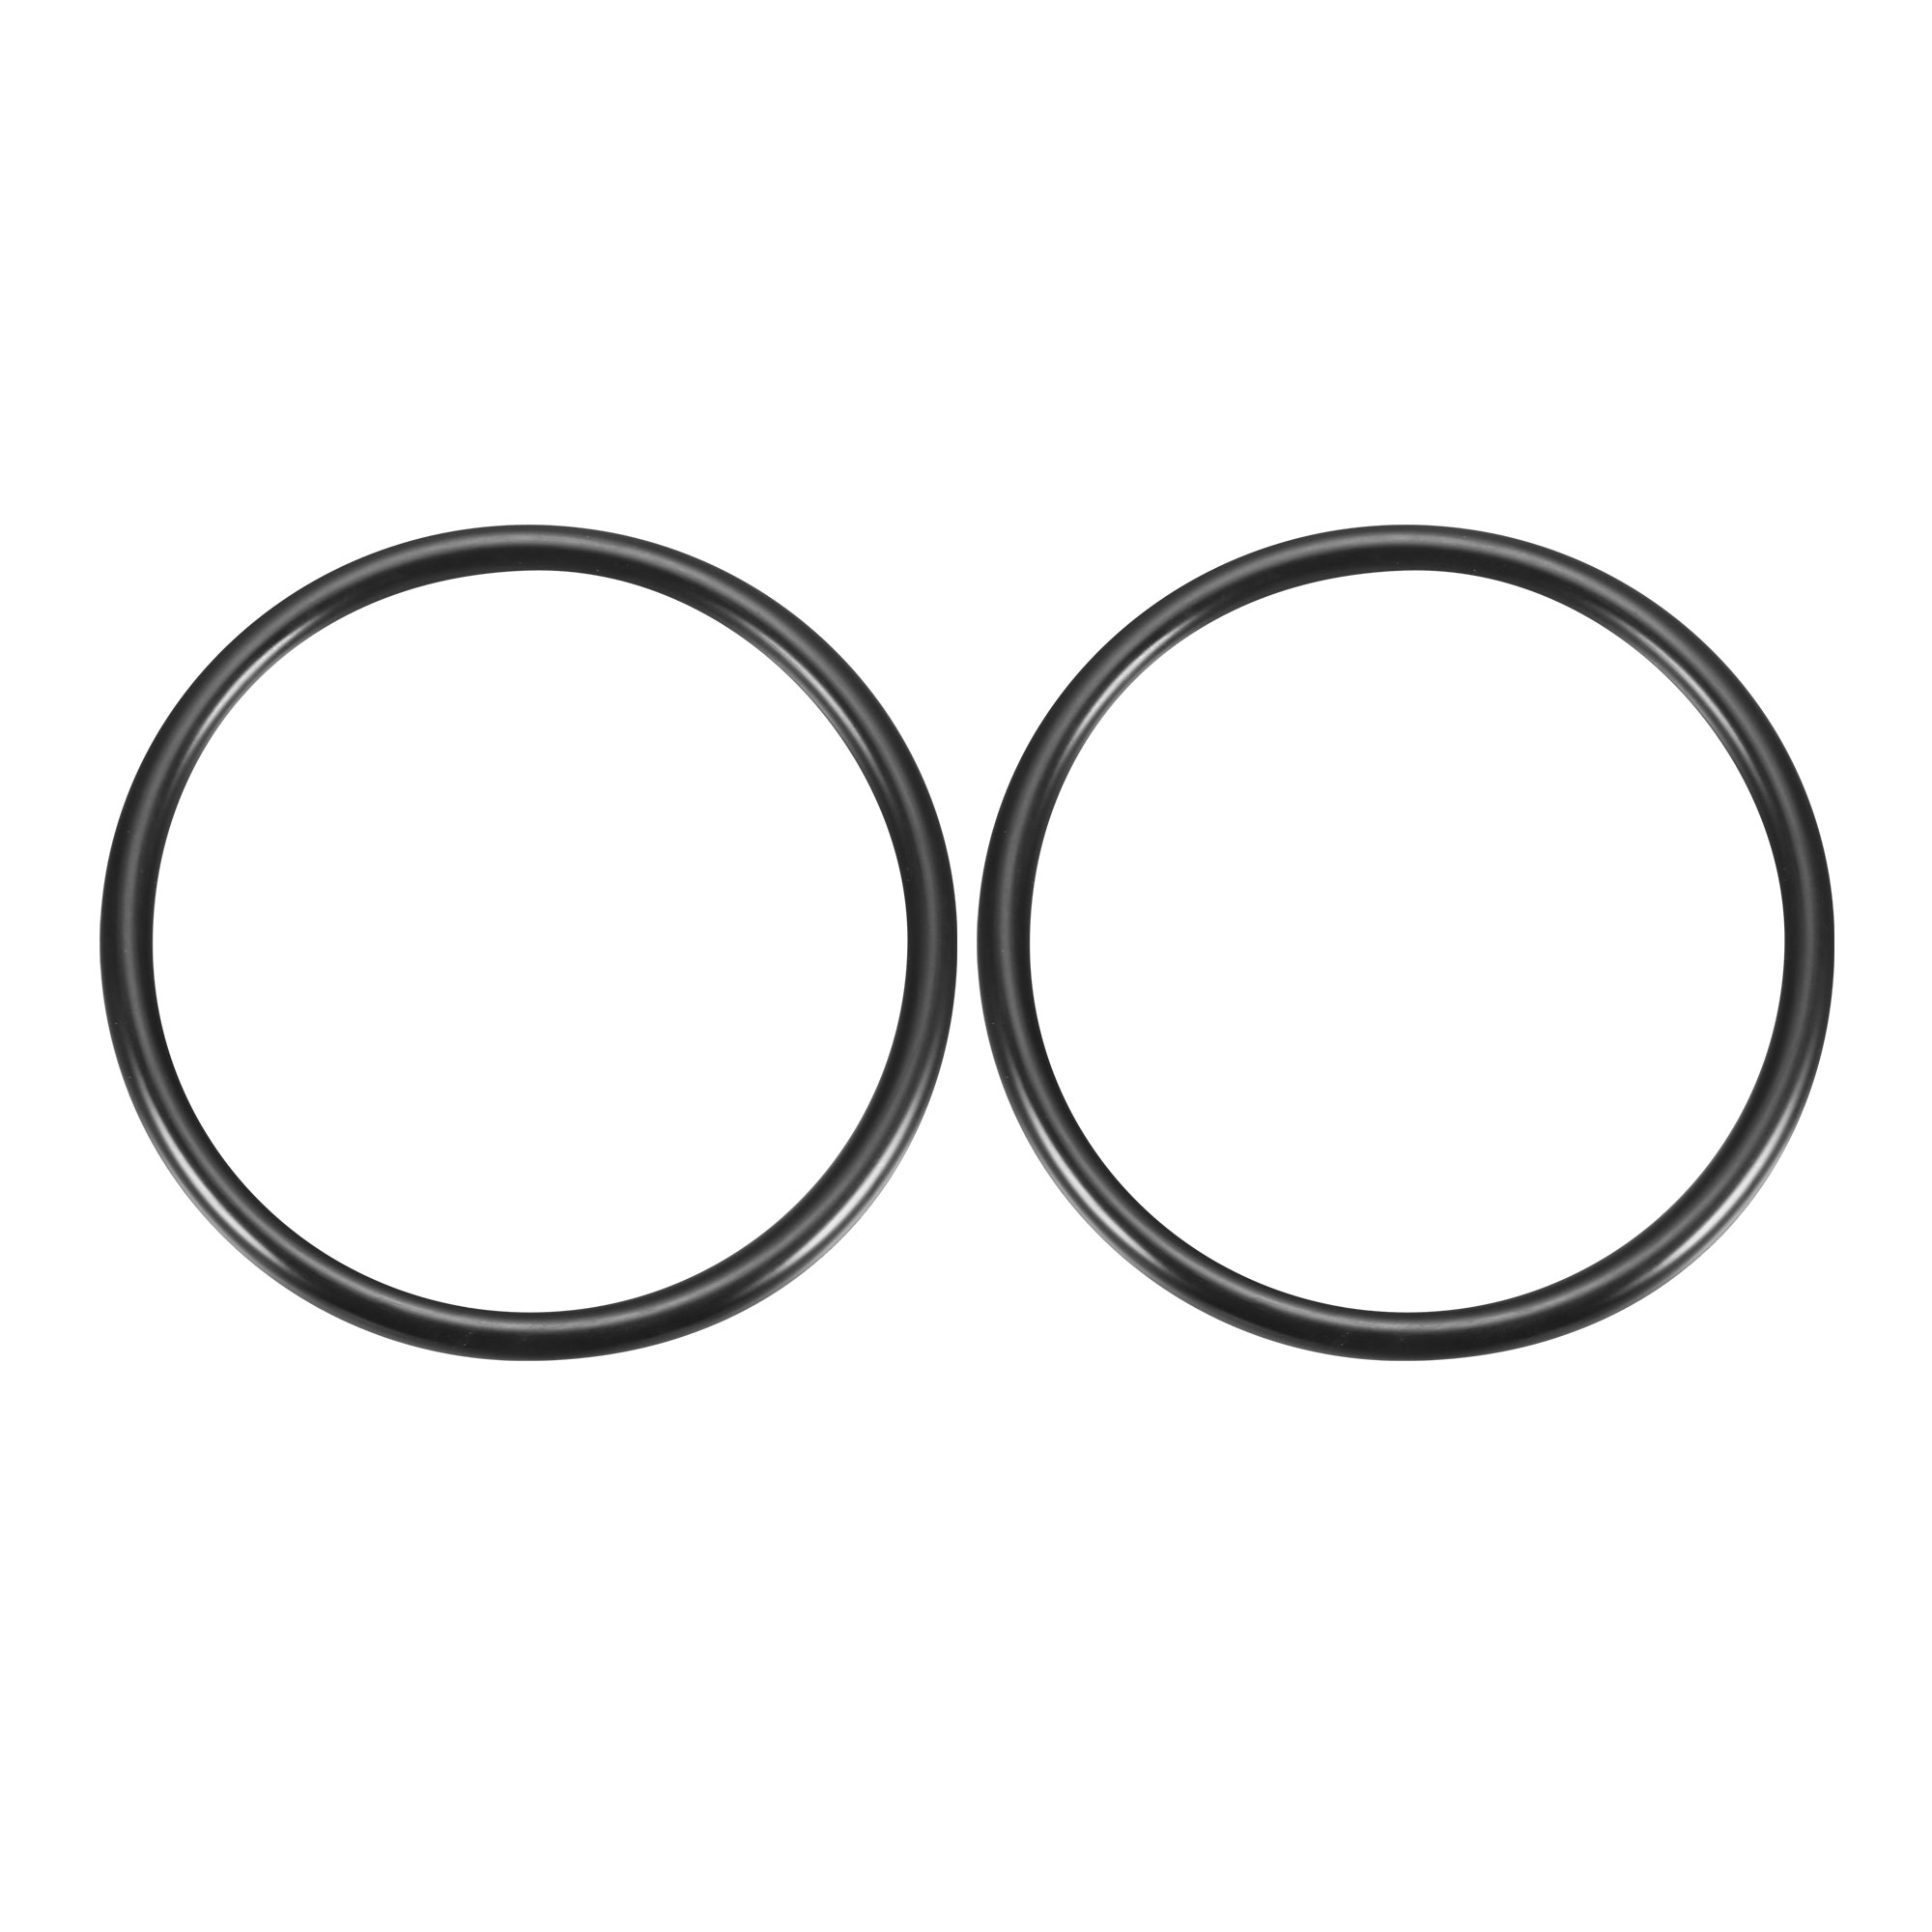 2Pcs Black Universal O-Ring 130mm x 8.6mm BUNA-N Material Oil Seal Washers Grommets